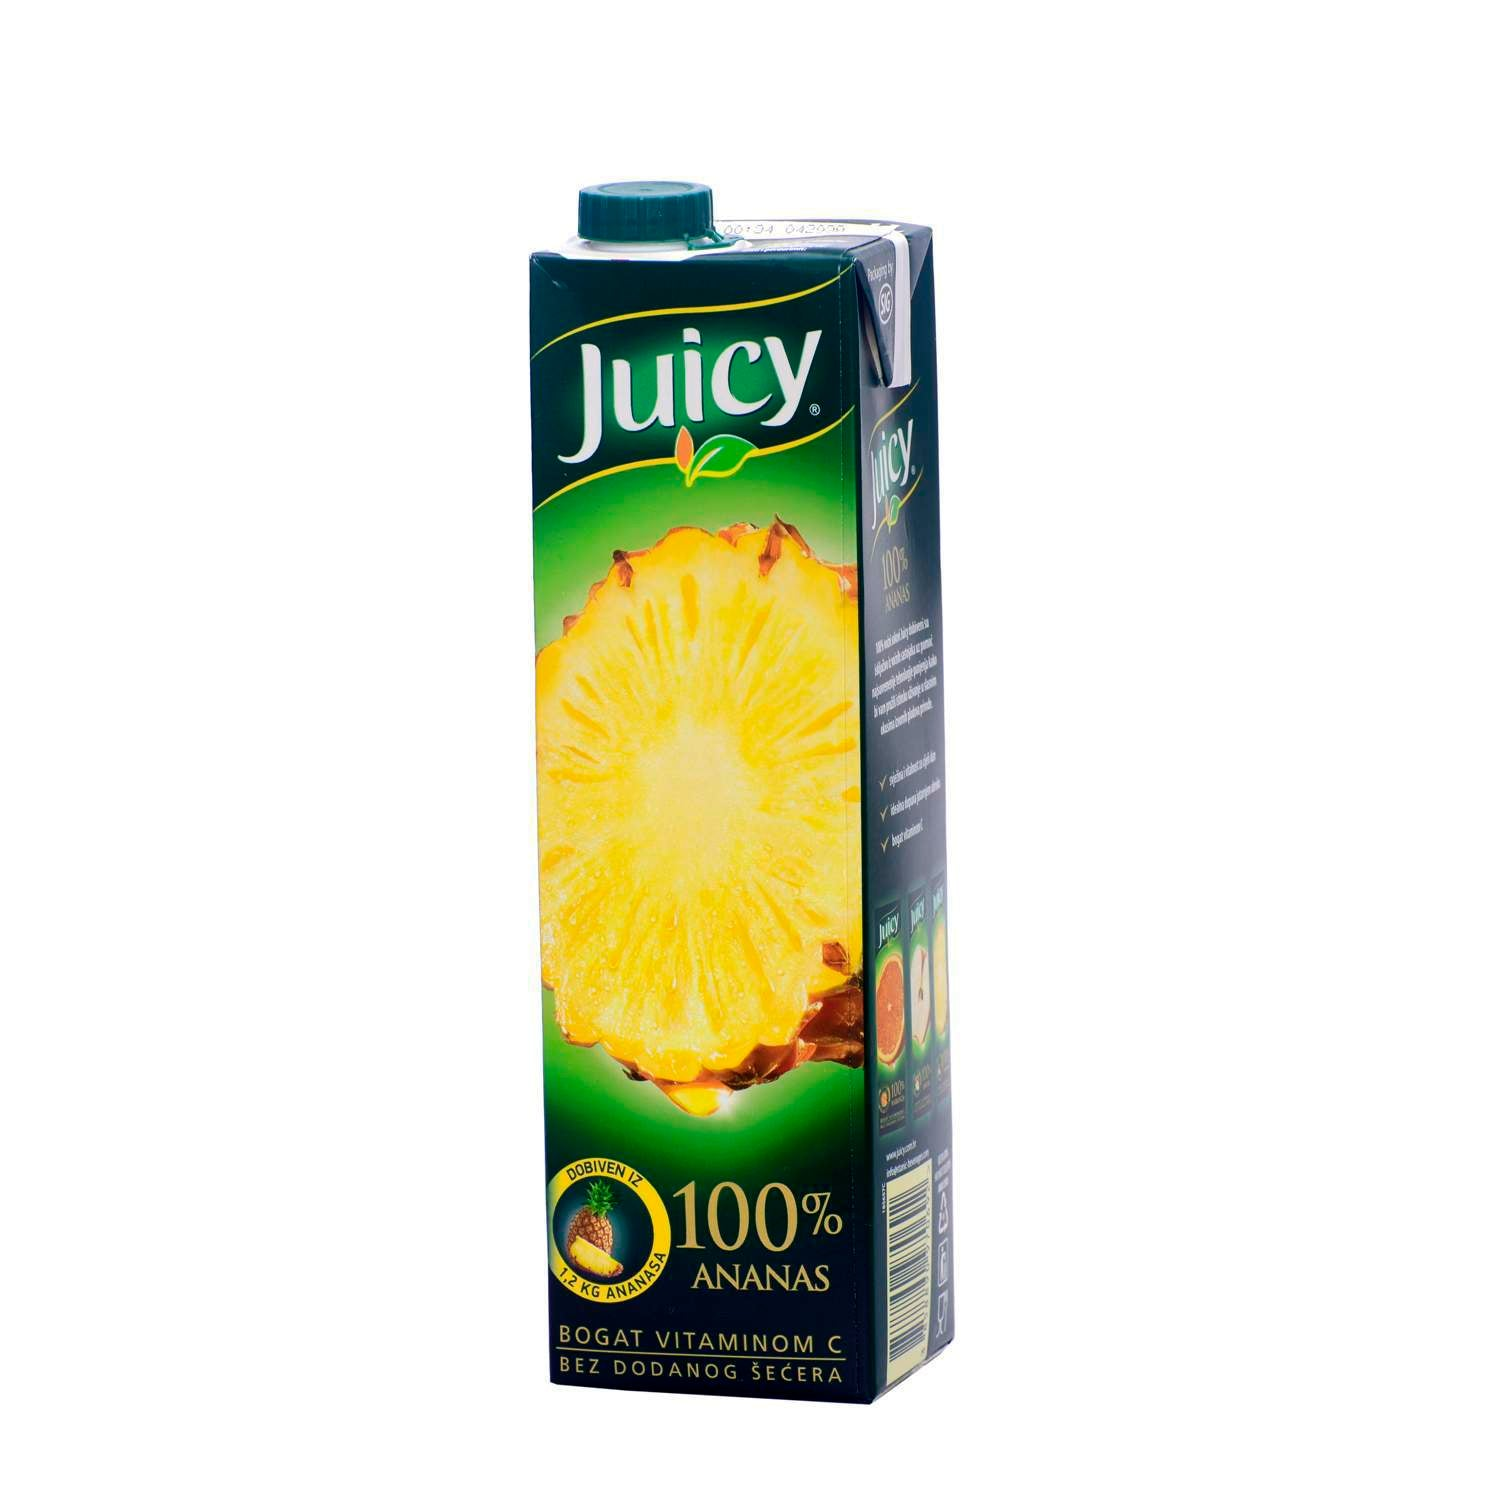 aga>Juicy Pineapple Juice 1l